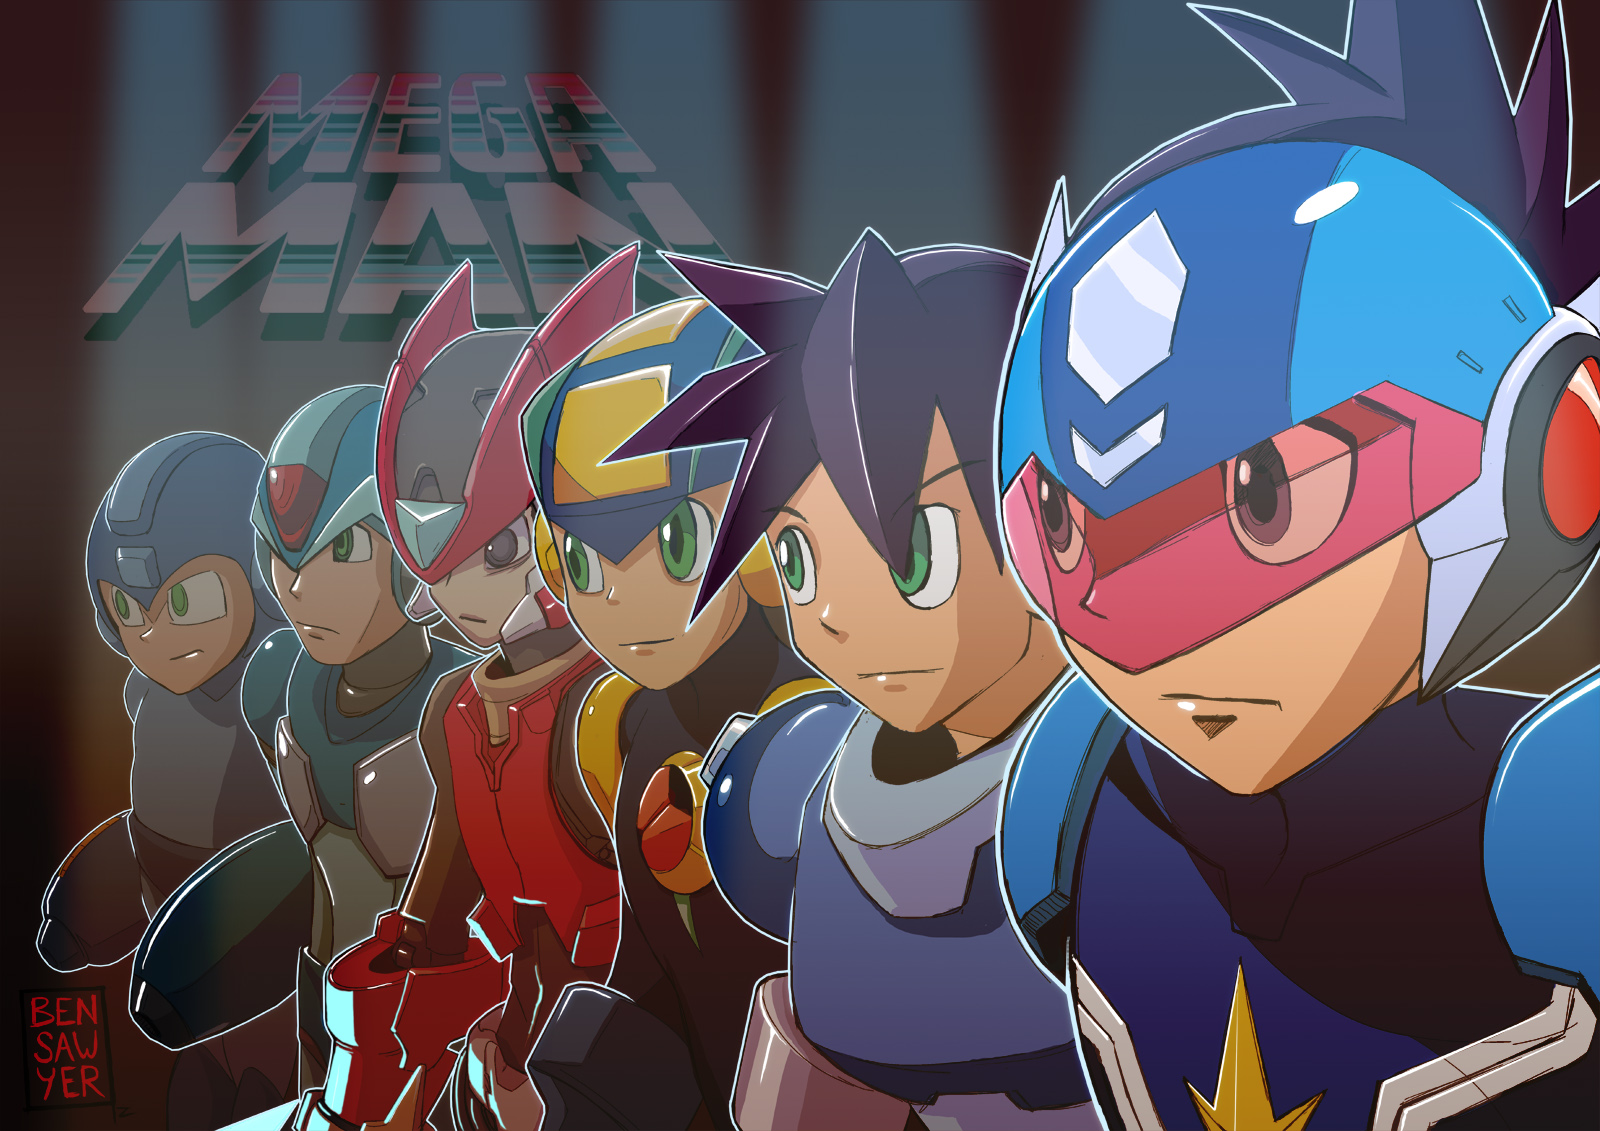 Megaman Battle Network: The Best Series in the Franchise?